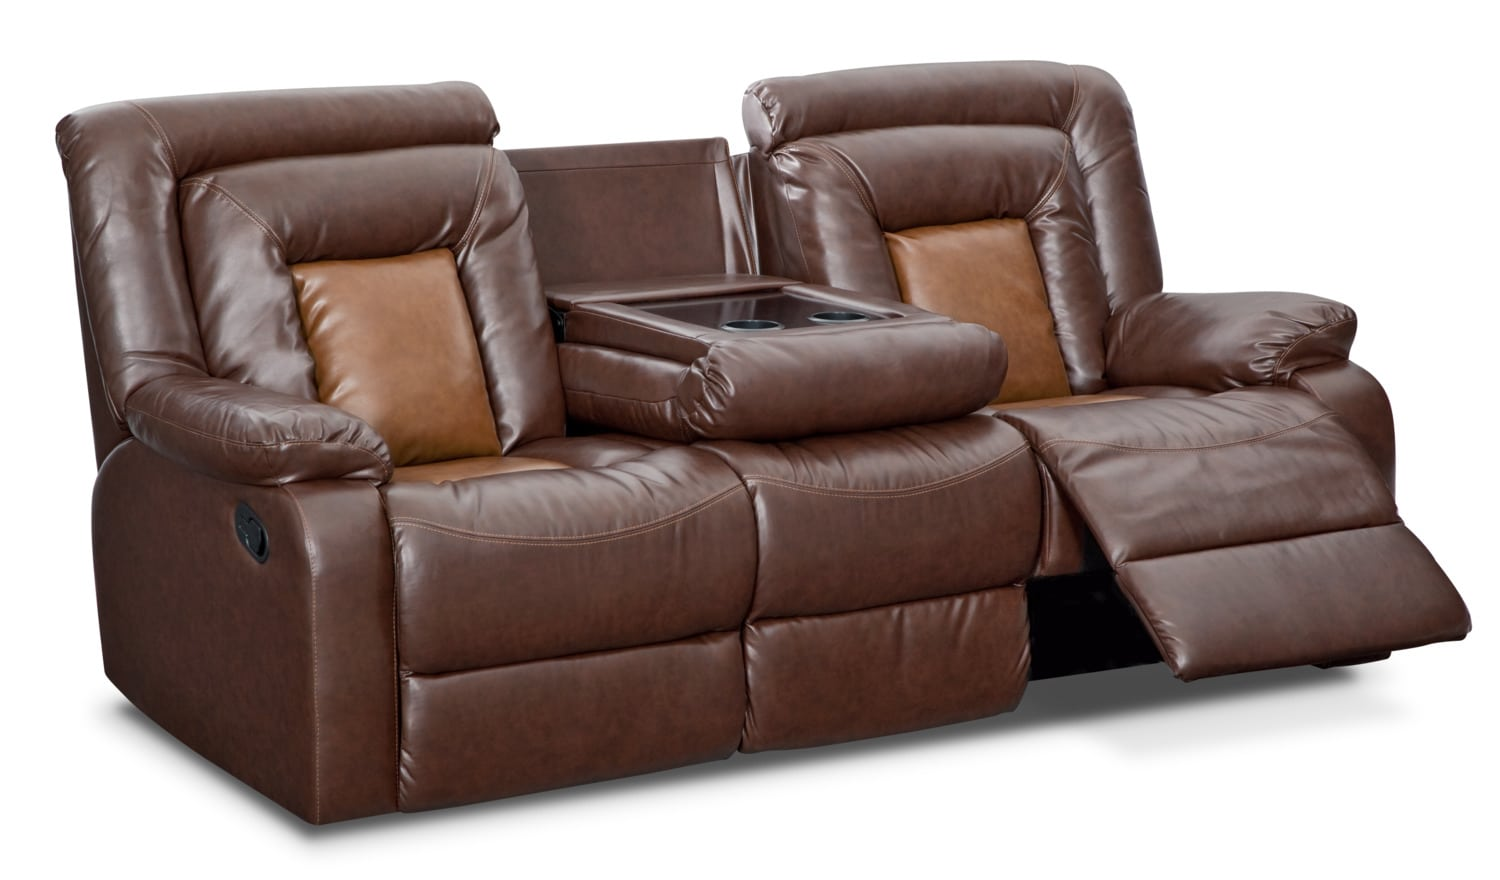 Mustang Dual Reclining Sofa With Console Brown Value